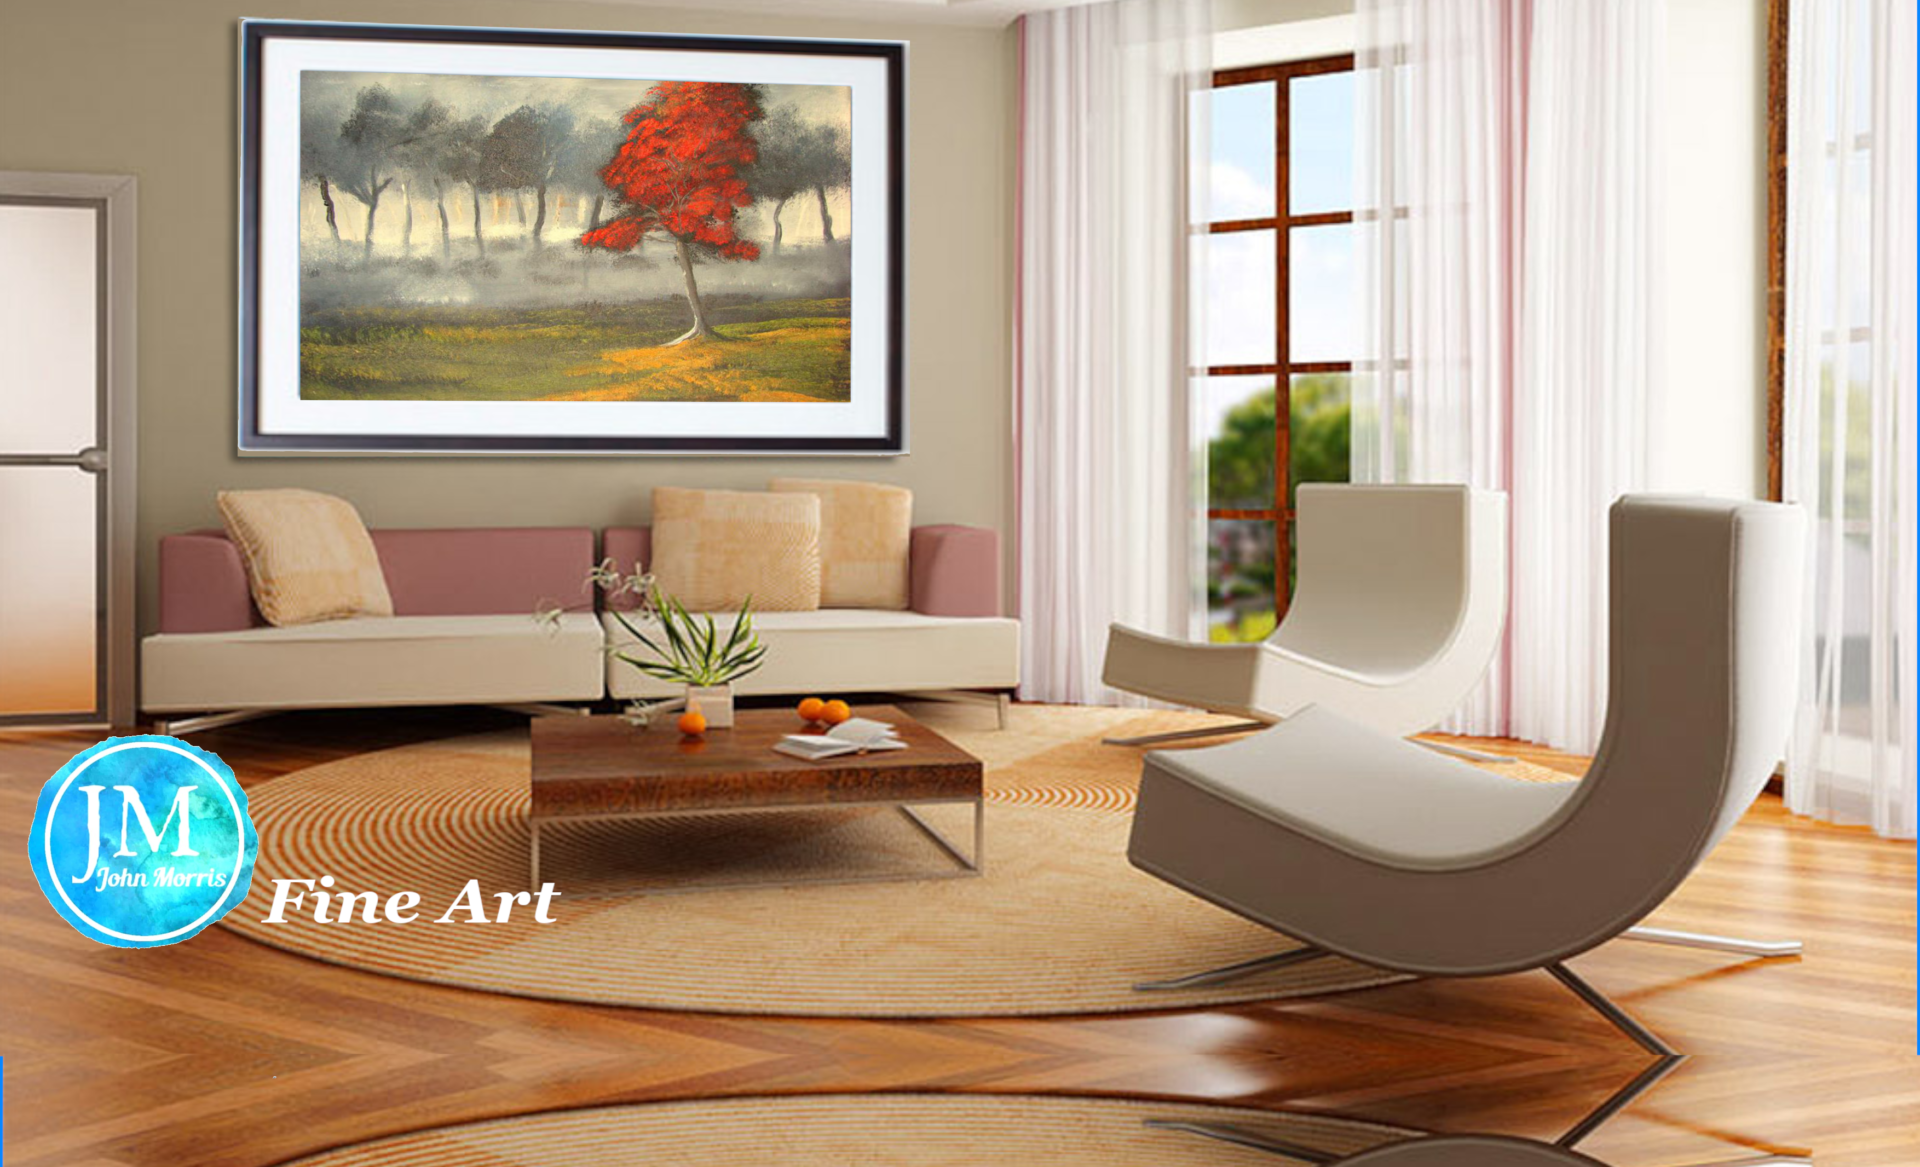 Looking For Amazing Paintings?